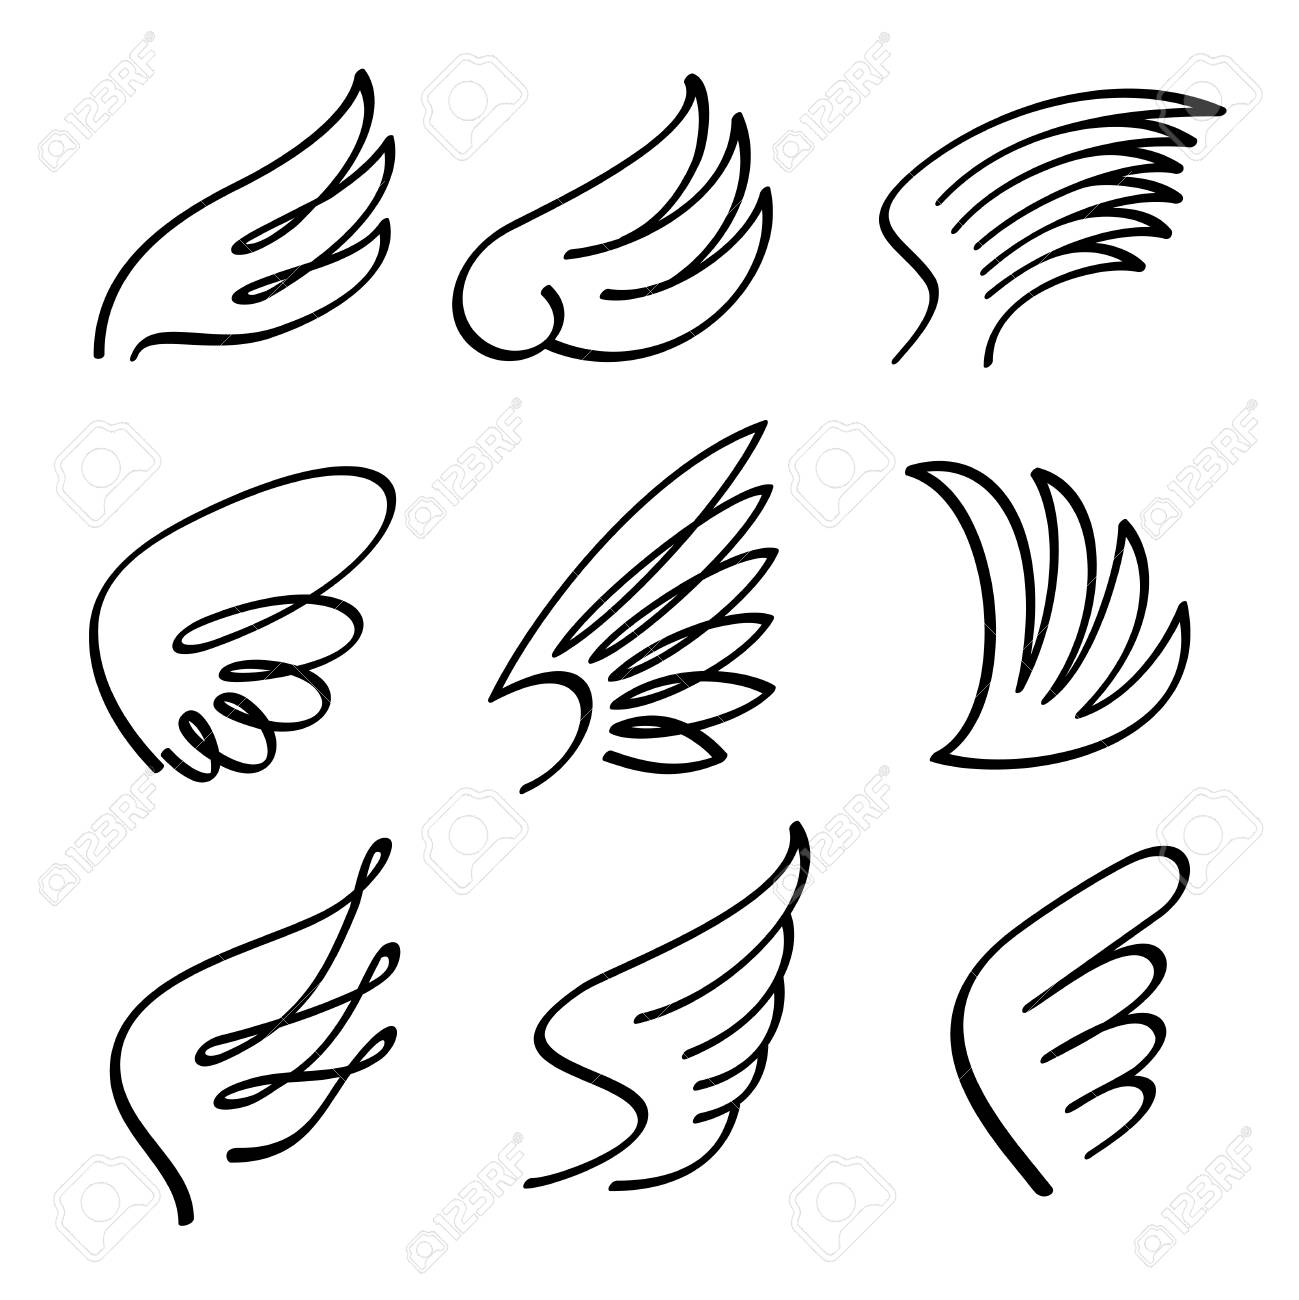 1299x1300 Cartoon Angel Wings Vector Set. Sketch Doodle Winged Abstract